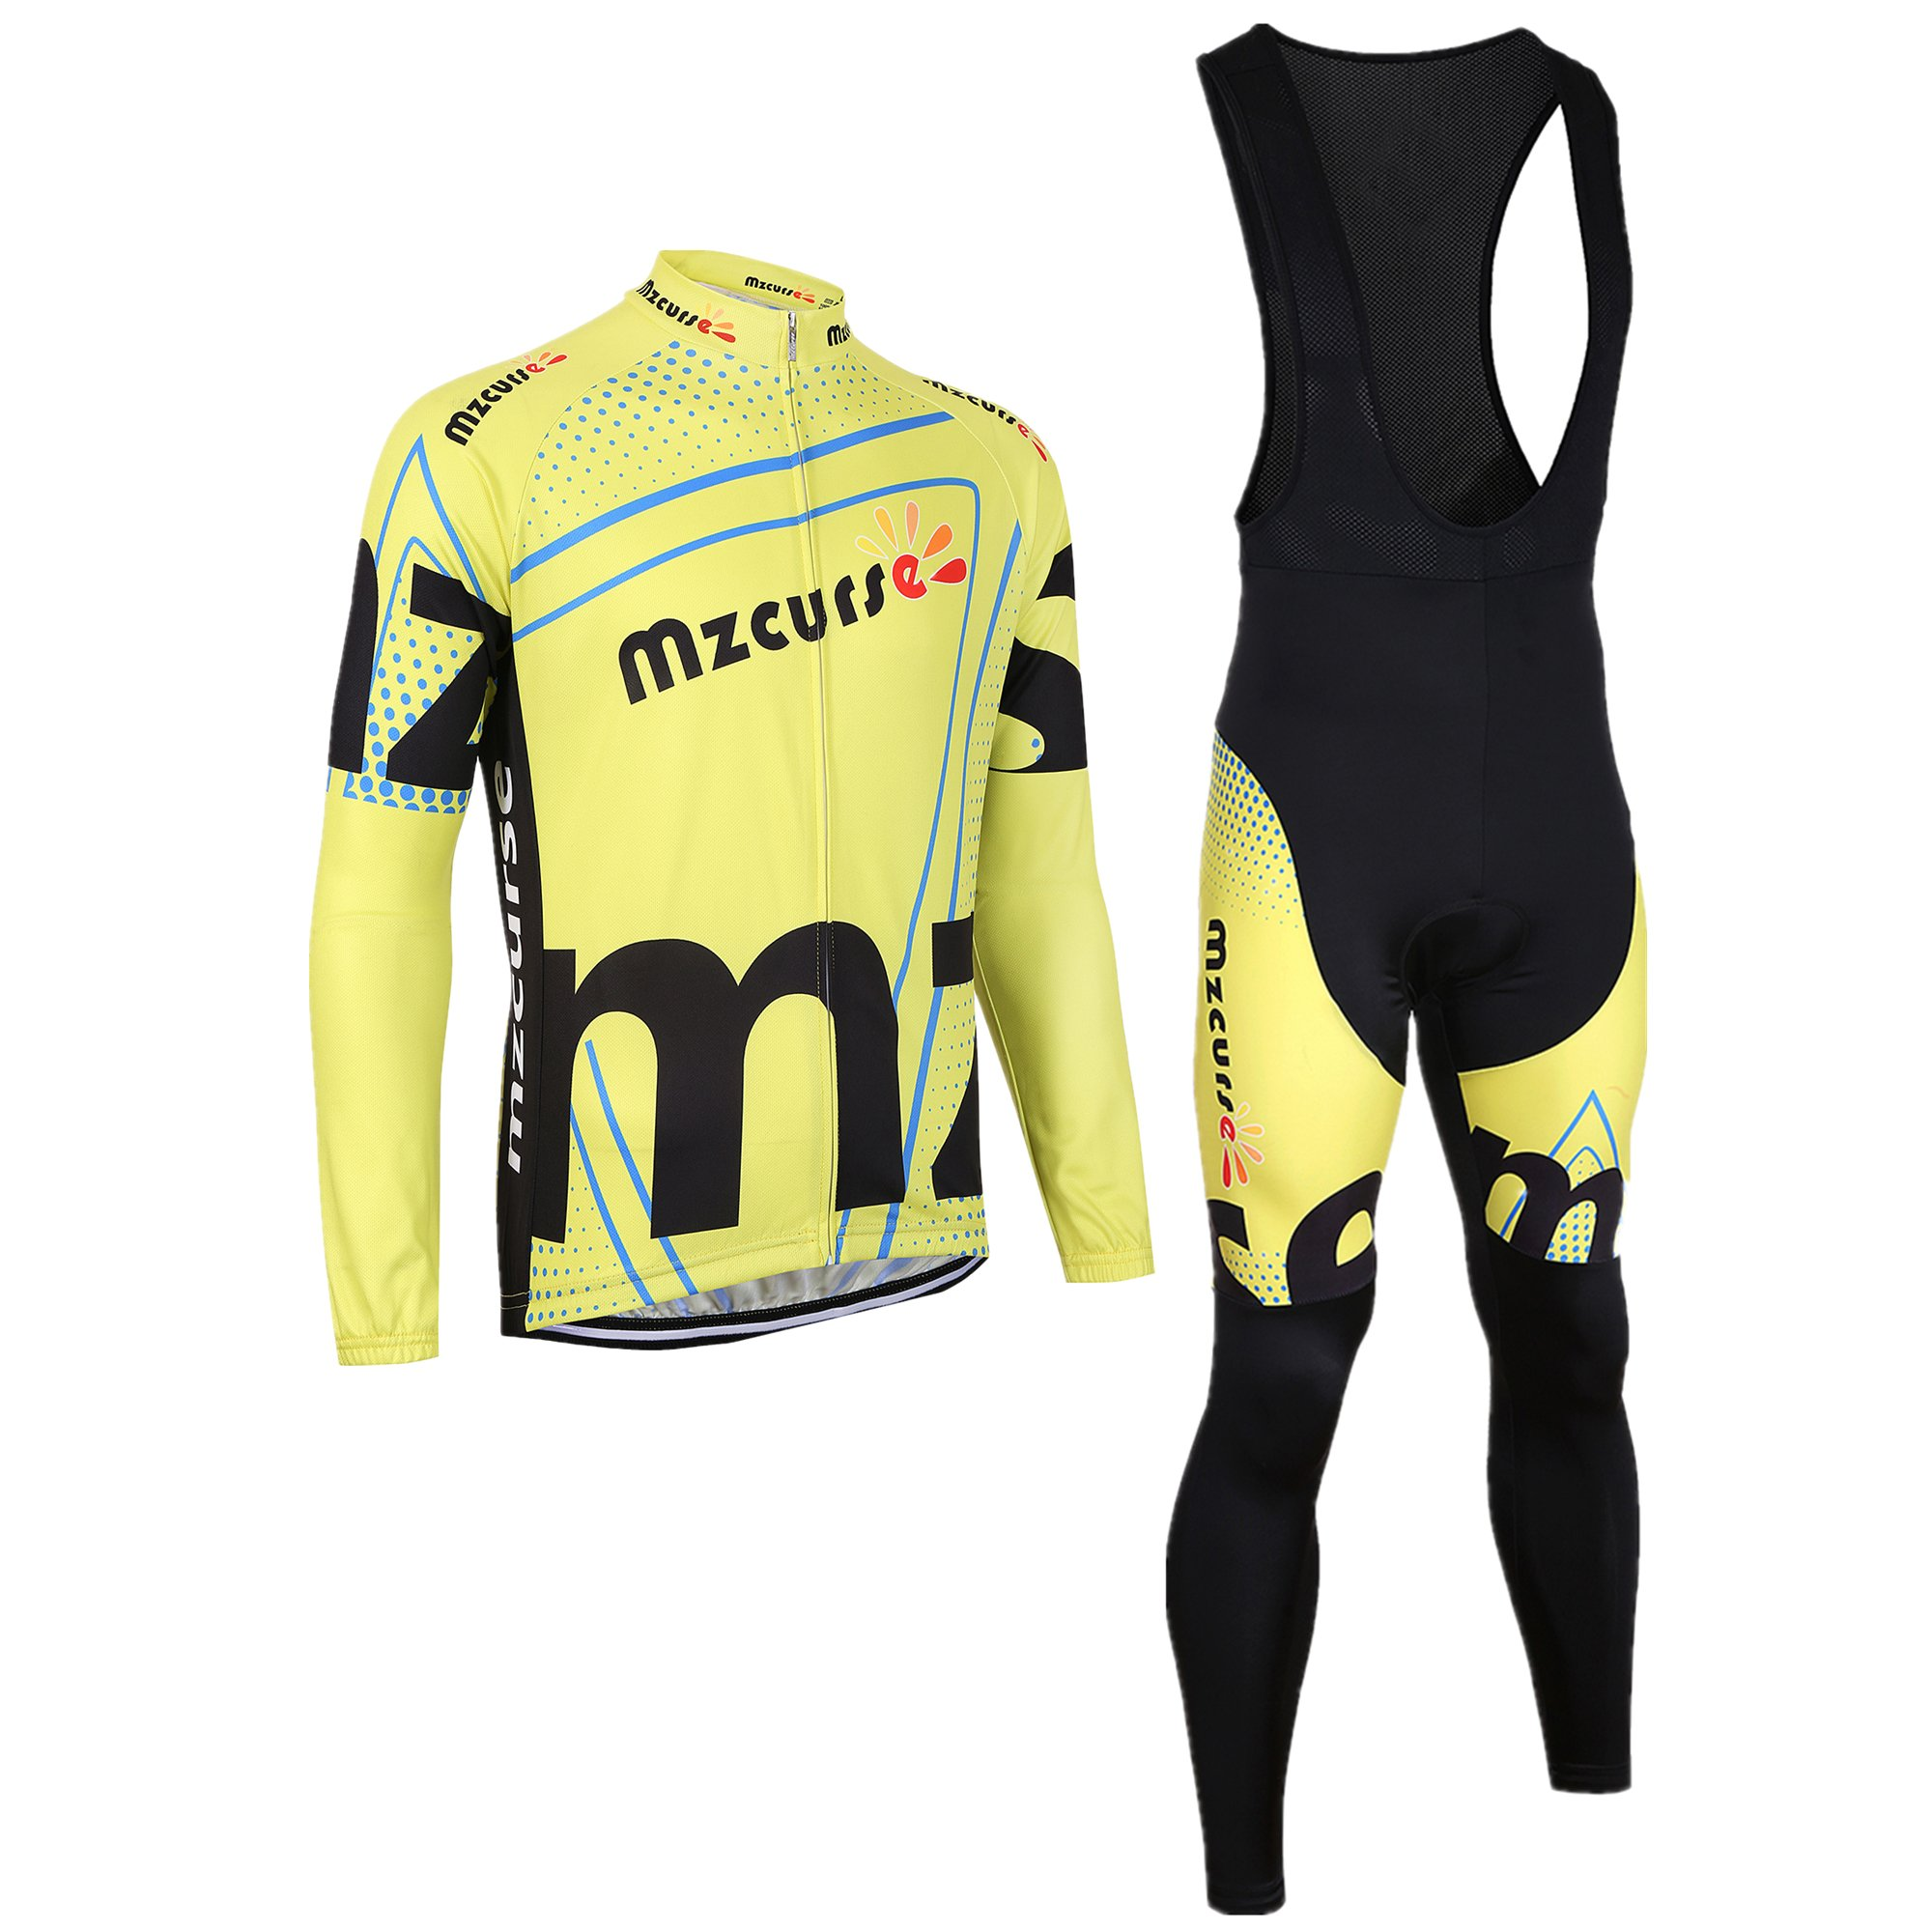 mzcurse Bicycle Bike Cycling Long Sleeve Jersey Jacket + Pants Shorts Set Skin Suits (Yellow Bib, Small,please check the size chart) by mzcurse